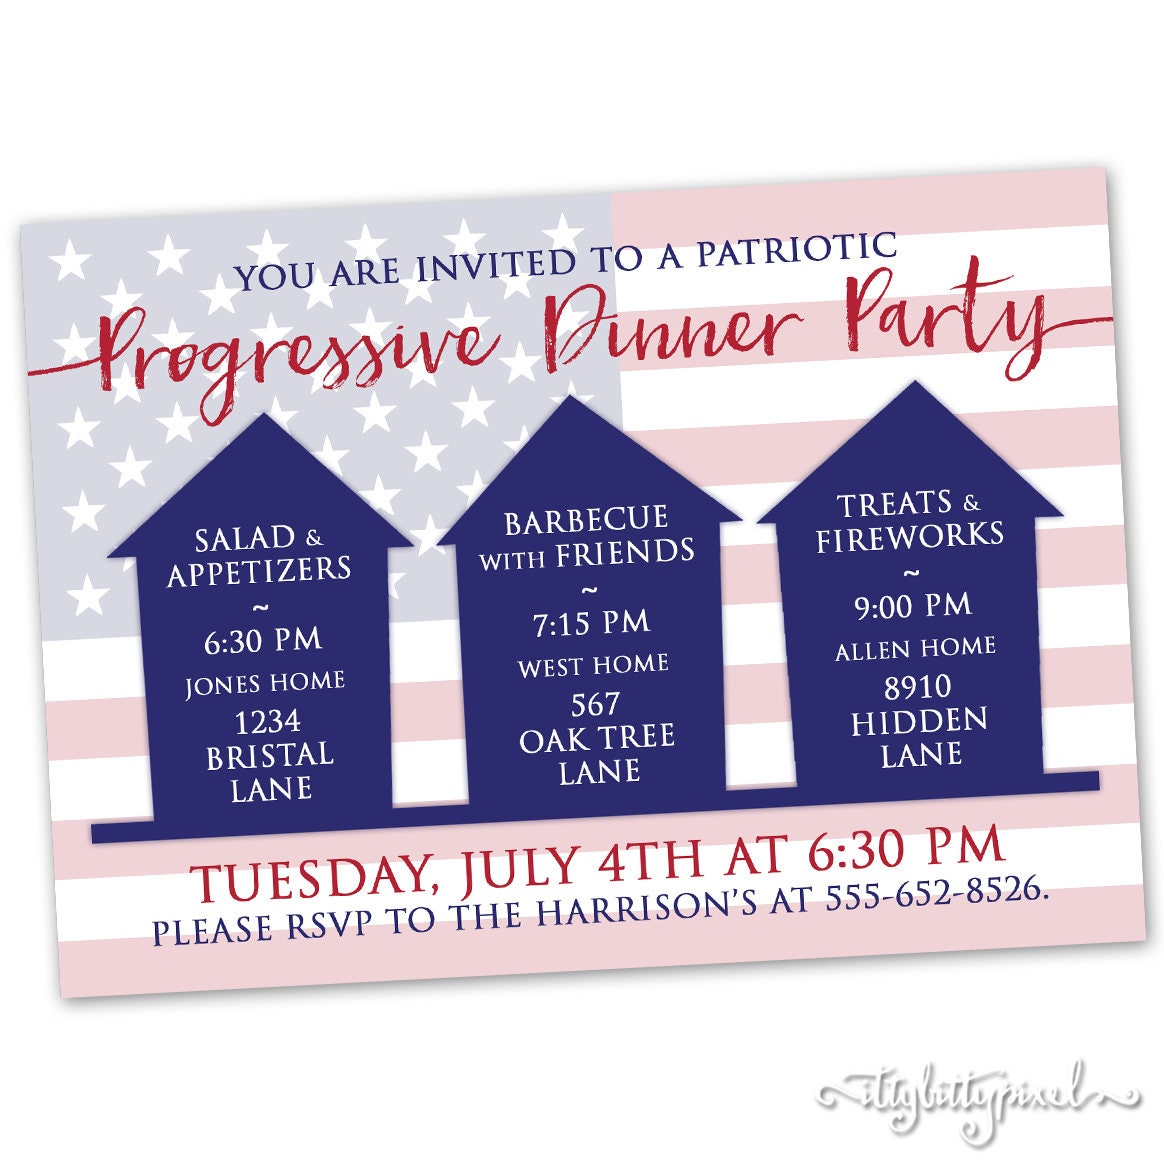 Progressive Dinner Party Invitation Patriotic Fourth of July